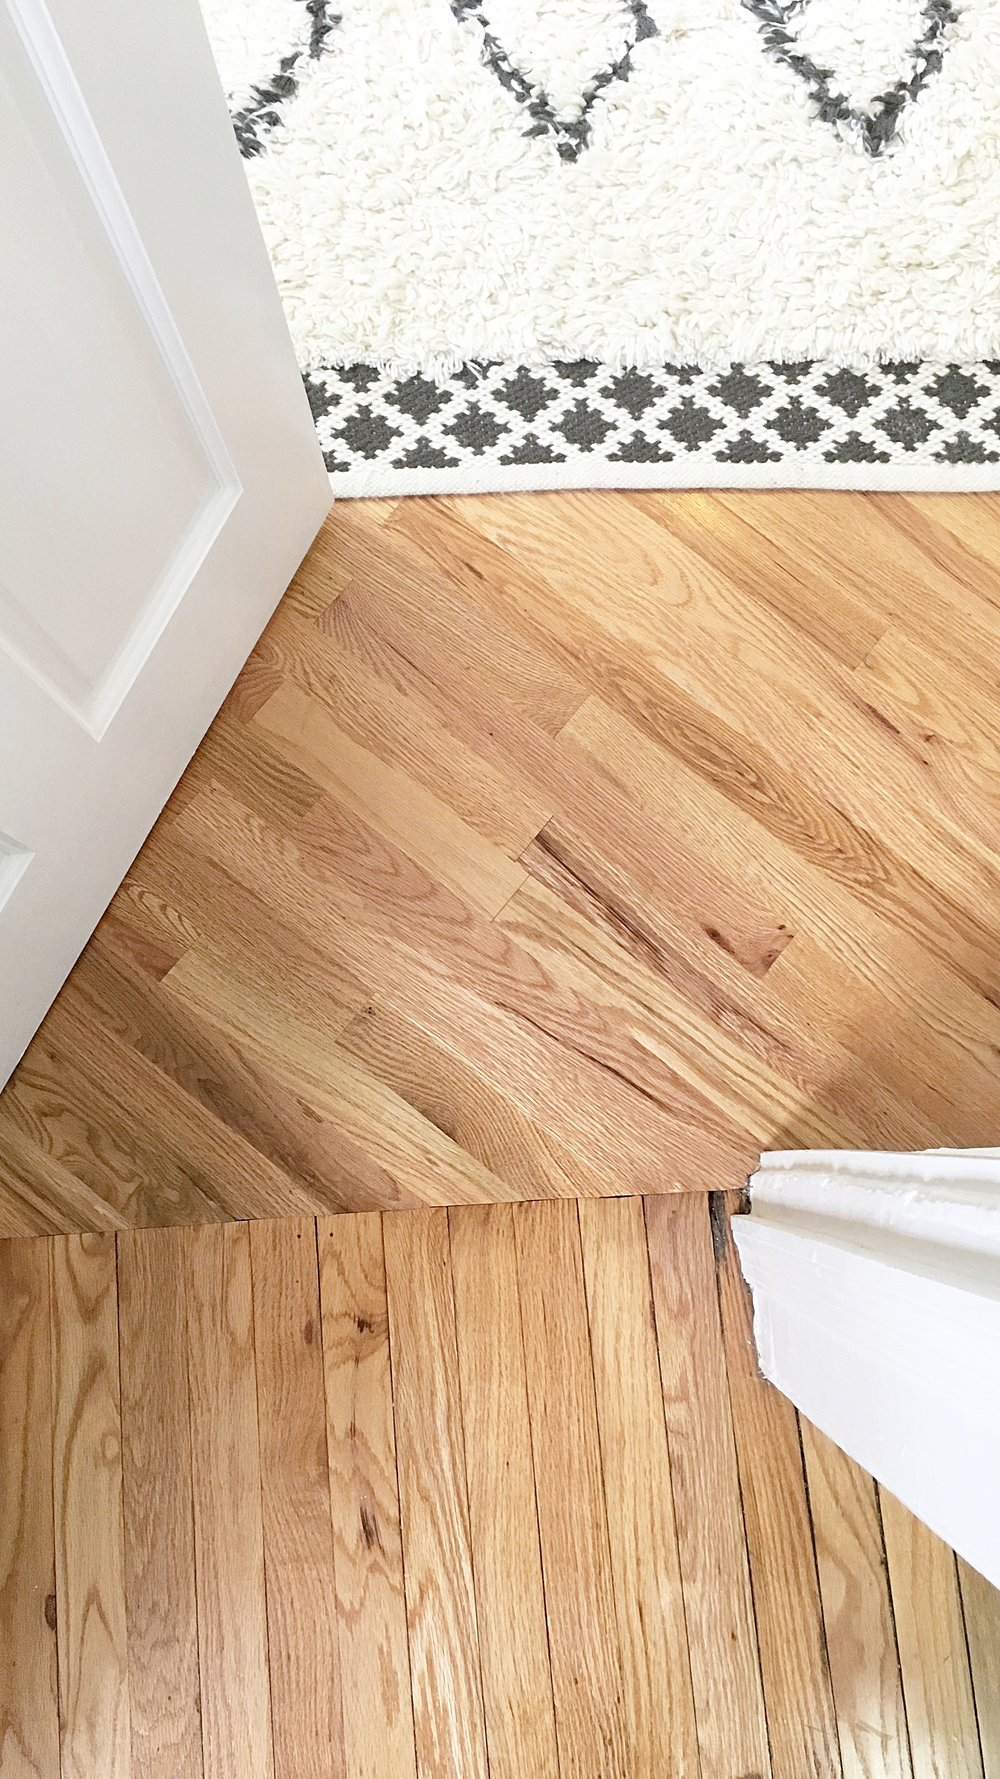 I still love the floors in our wonky Brooklyn apartment